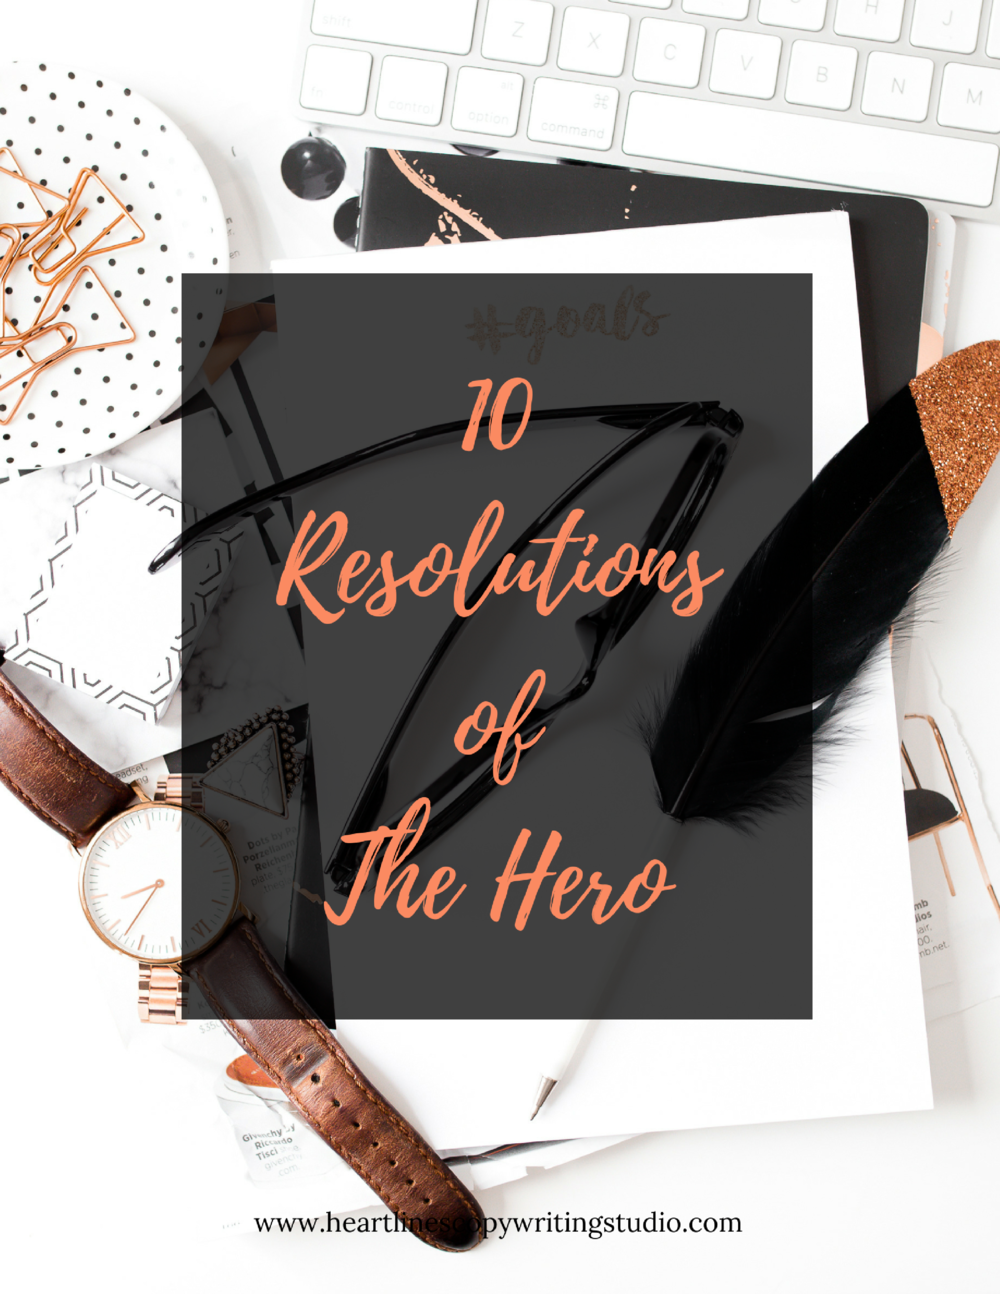 Download the PDF version of The 10 Resolutions of The Hero right here.